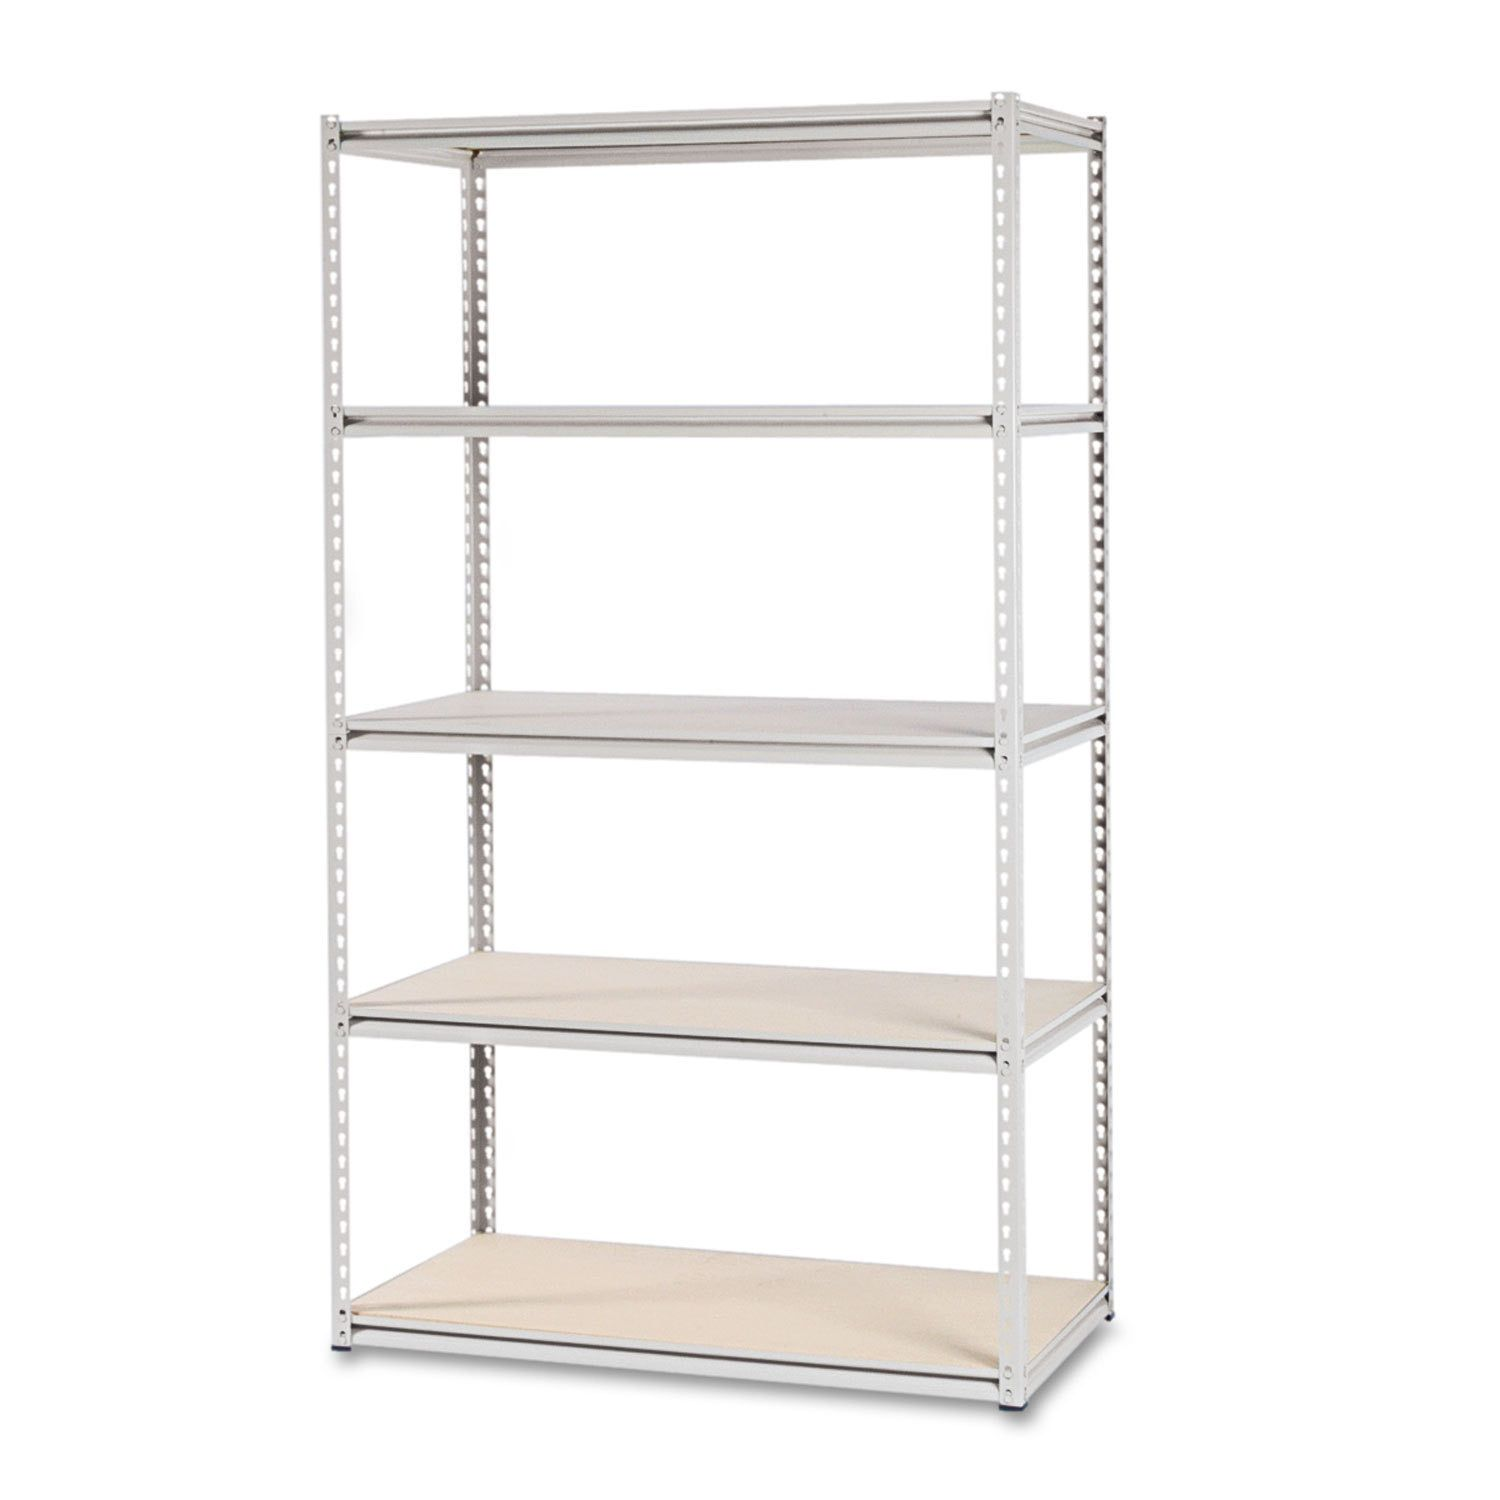 Tennsco Stur D Stor Shelving Five Shelf 48 Inch Wide X 24 Inch Deep X 84h Sand Shelves Steel Shelving Plastic Shelves